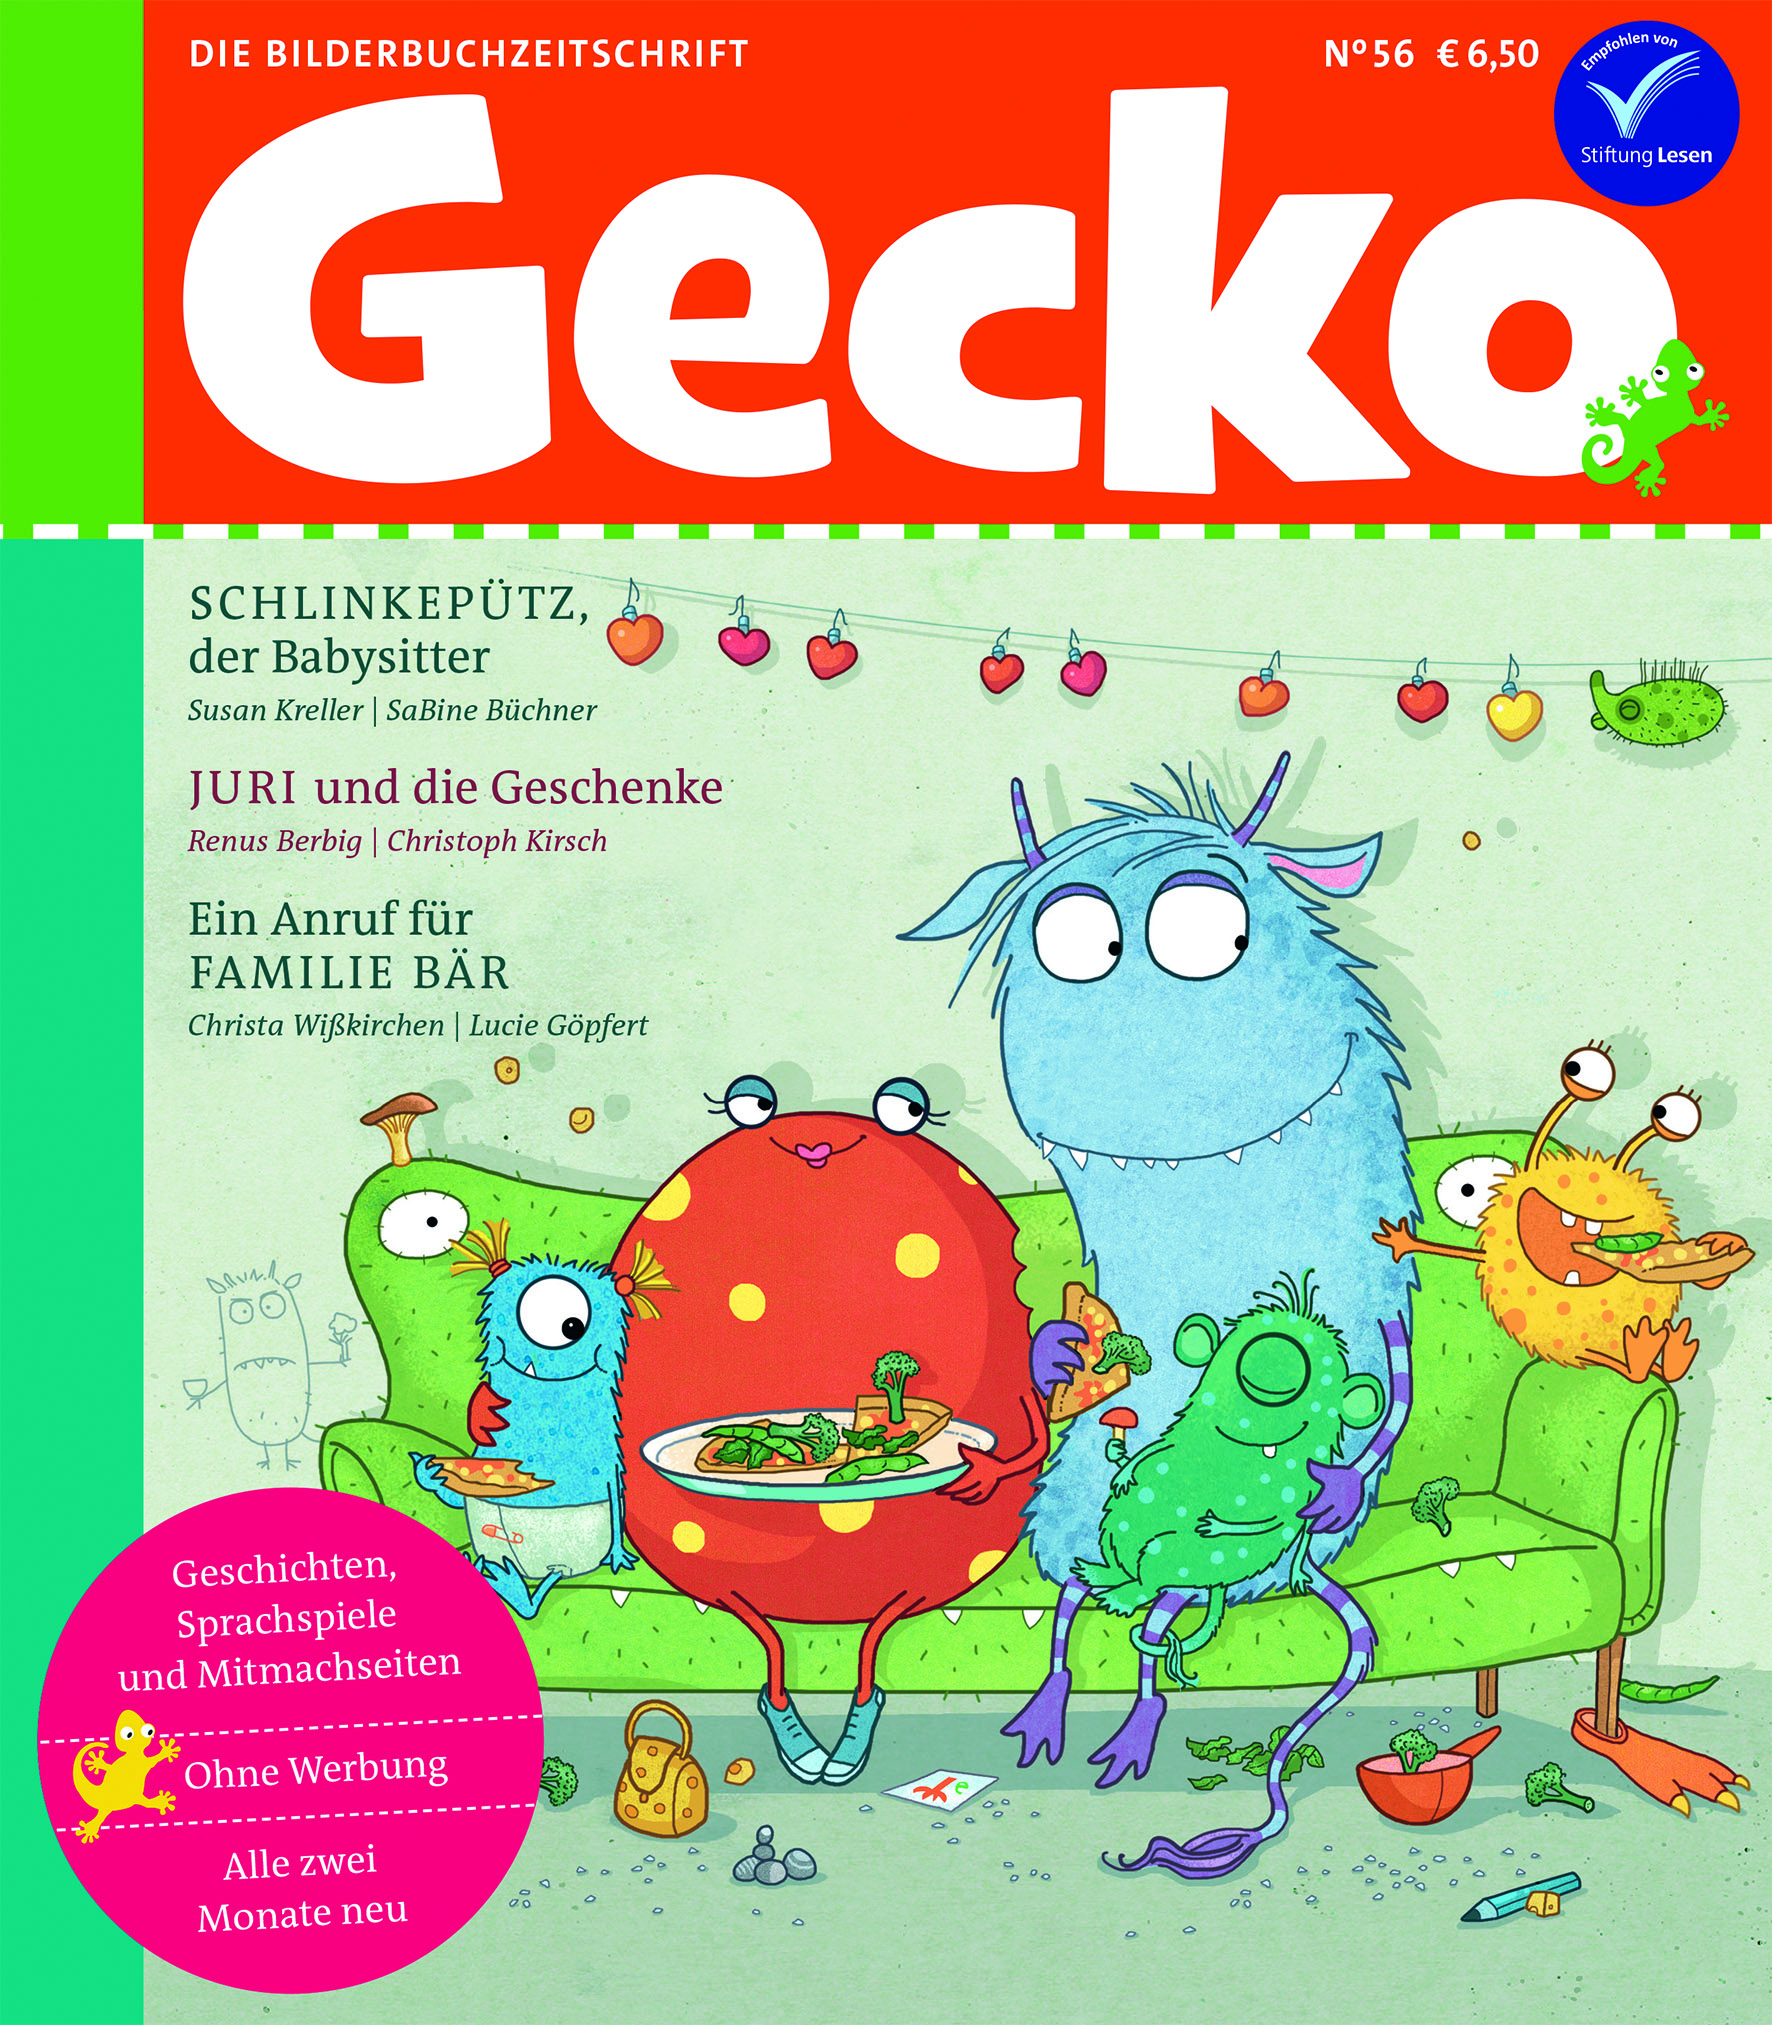 Gecko_56 Cover Druck (4 MB)